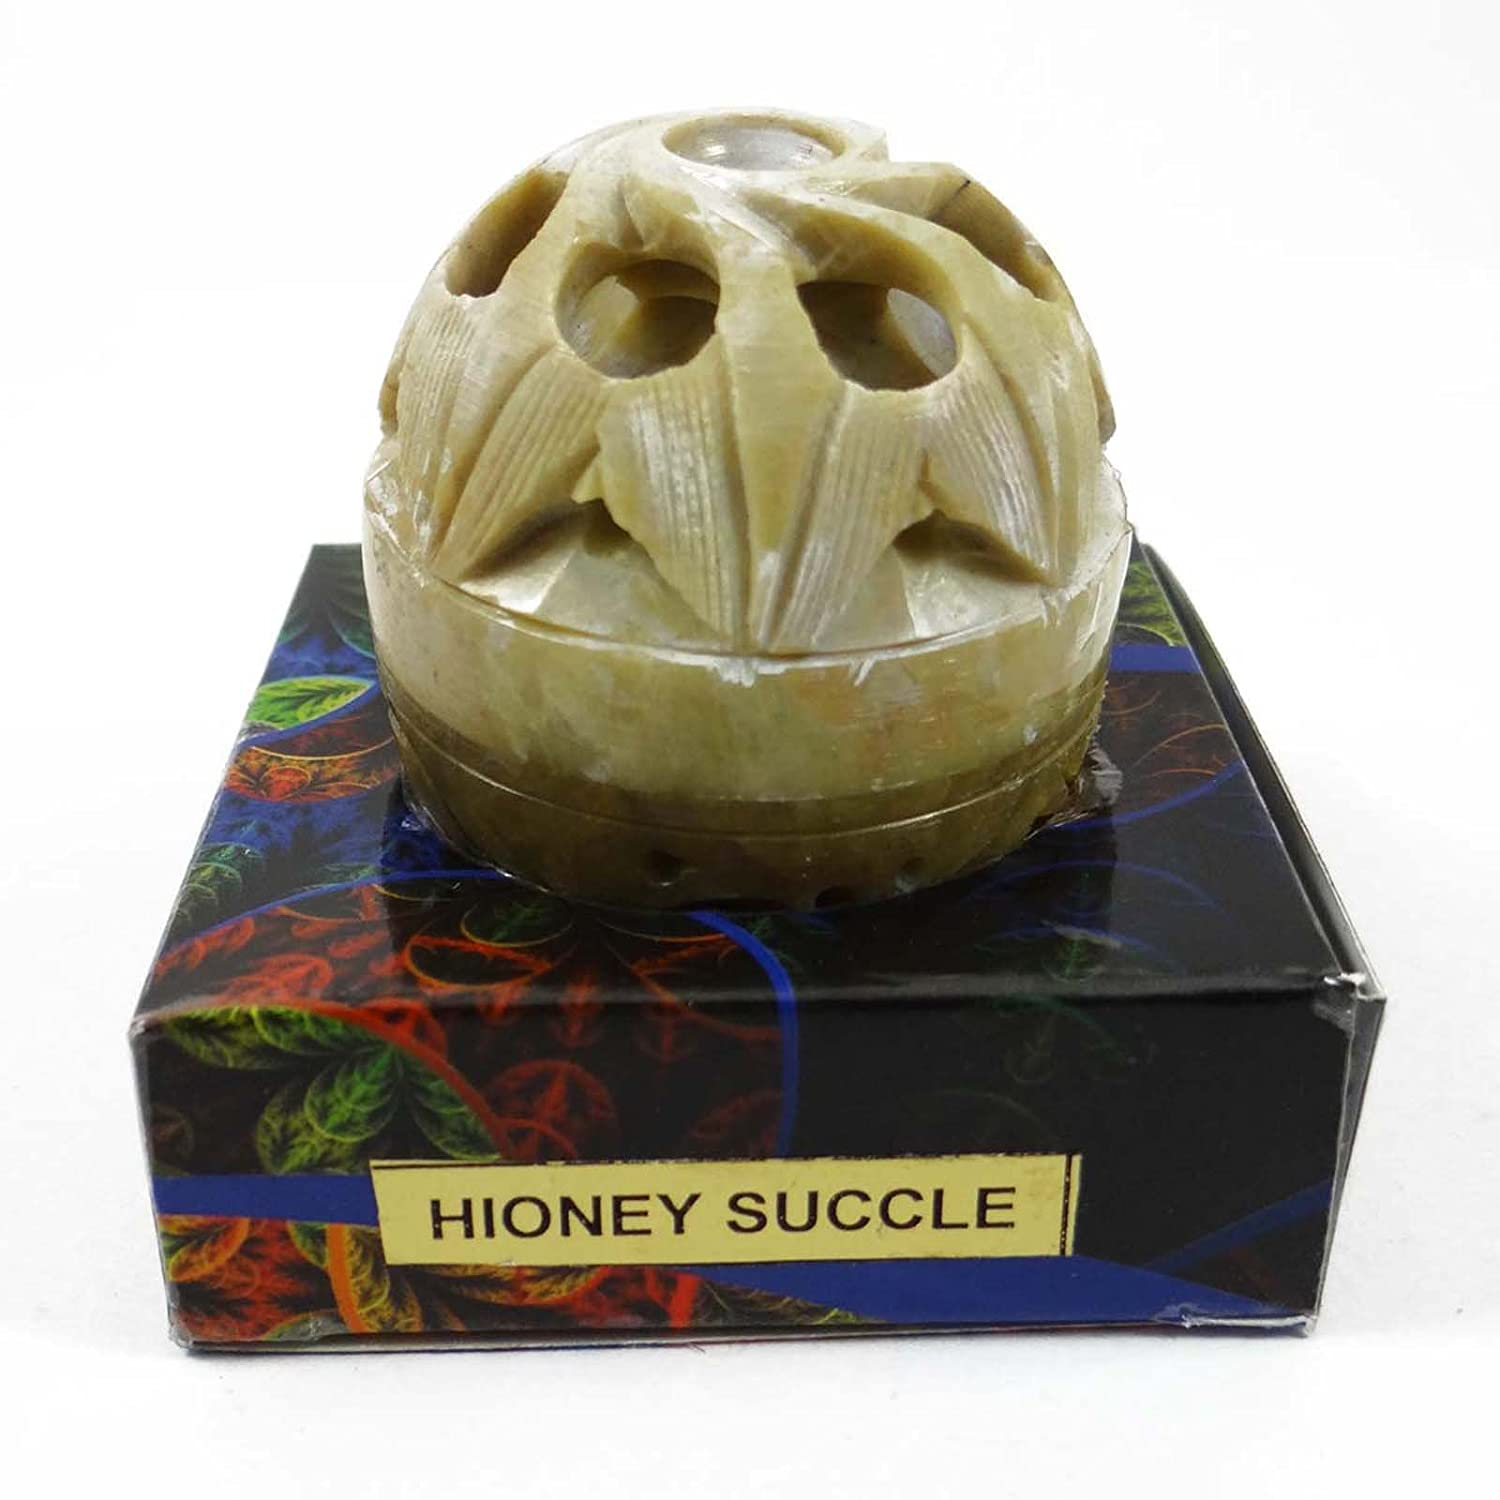 Natural Honey Succle Solid Perfume Body Musk In Stone Jar 8 Gms